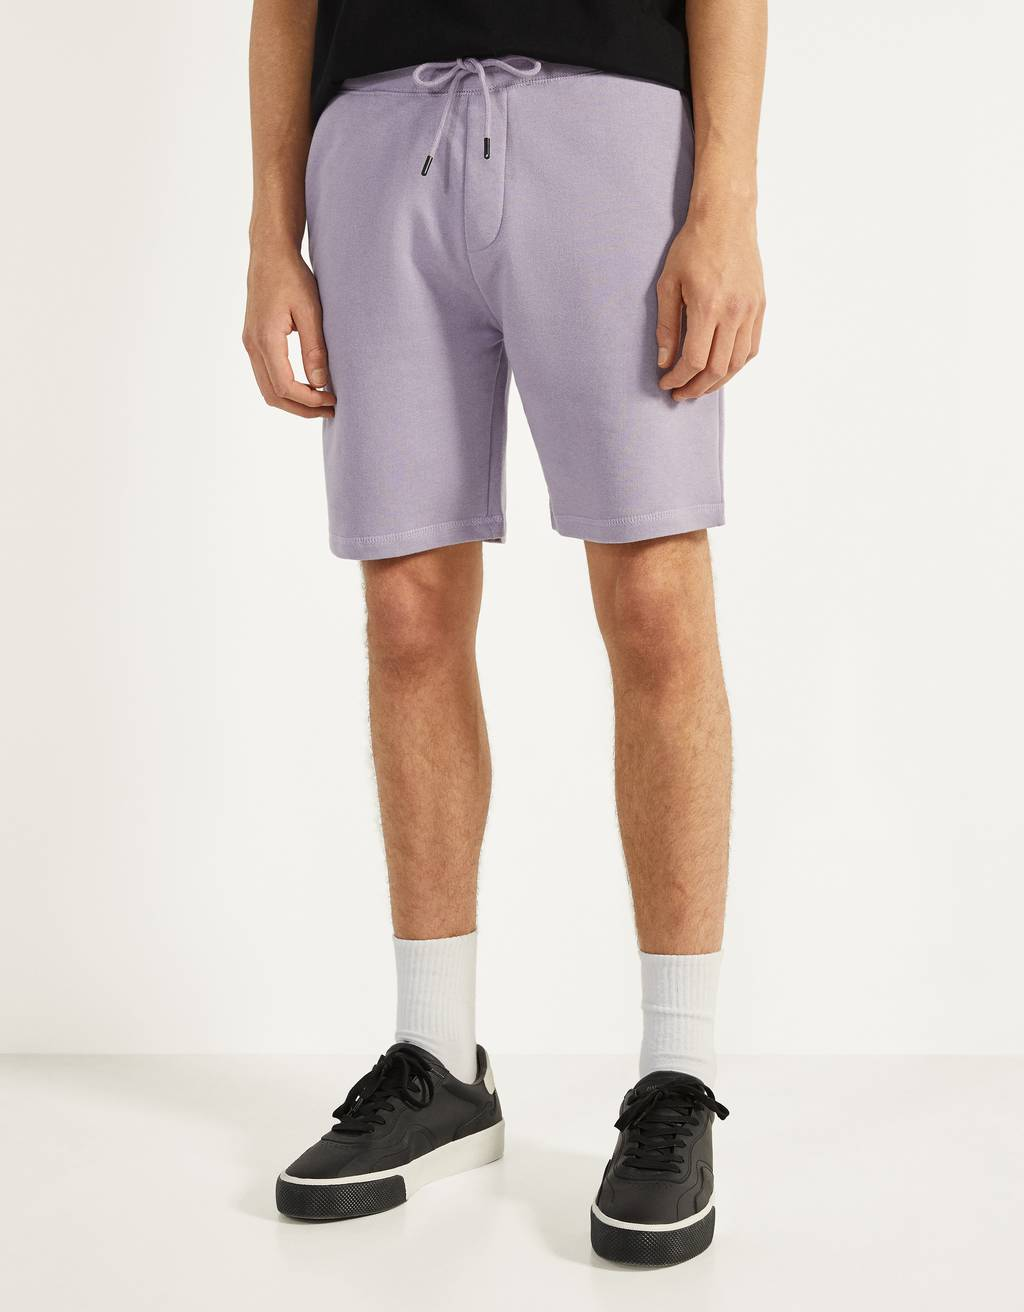 Plush Bermuda shorts